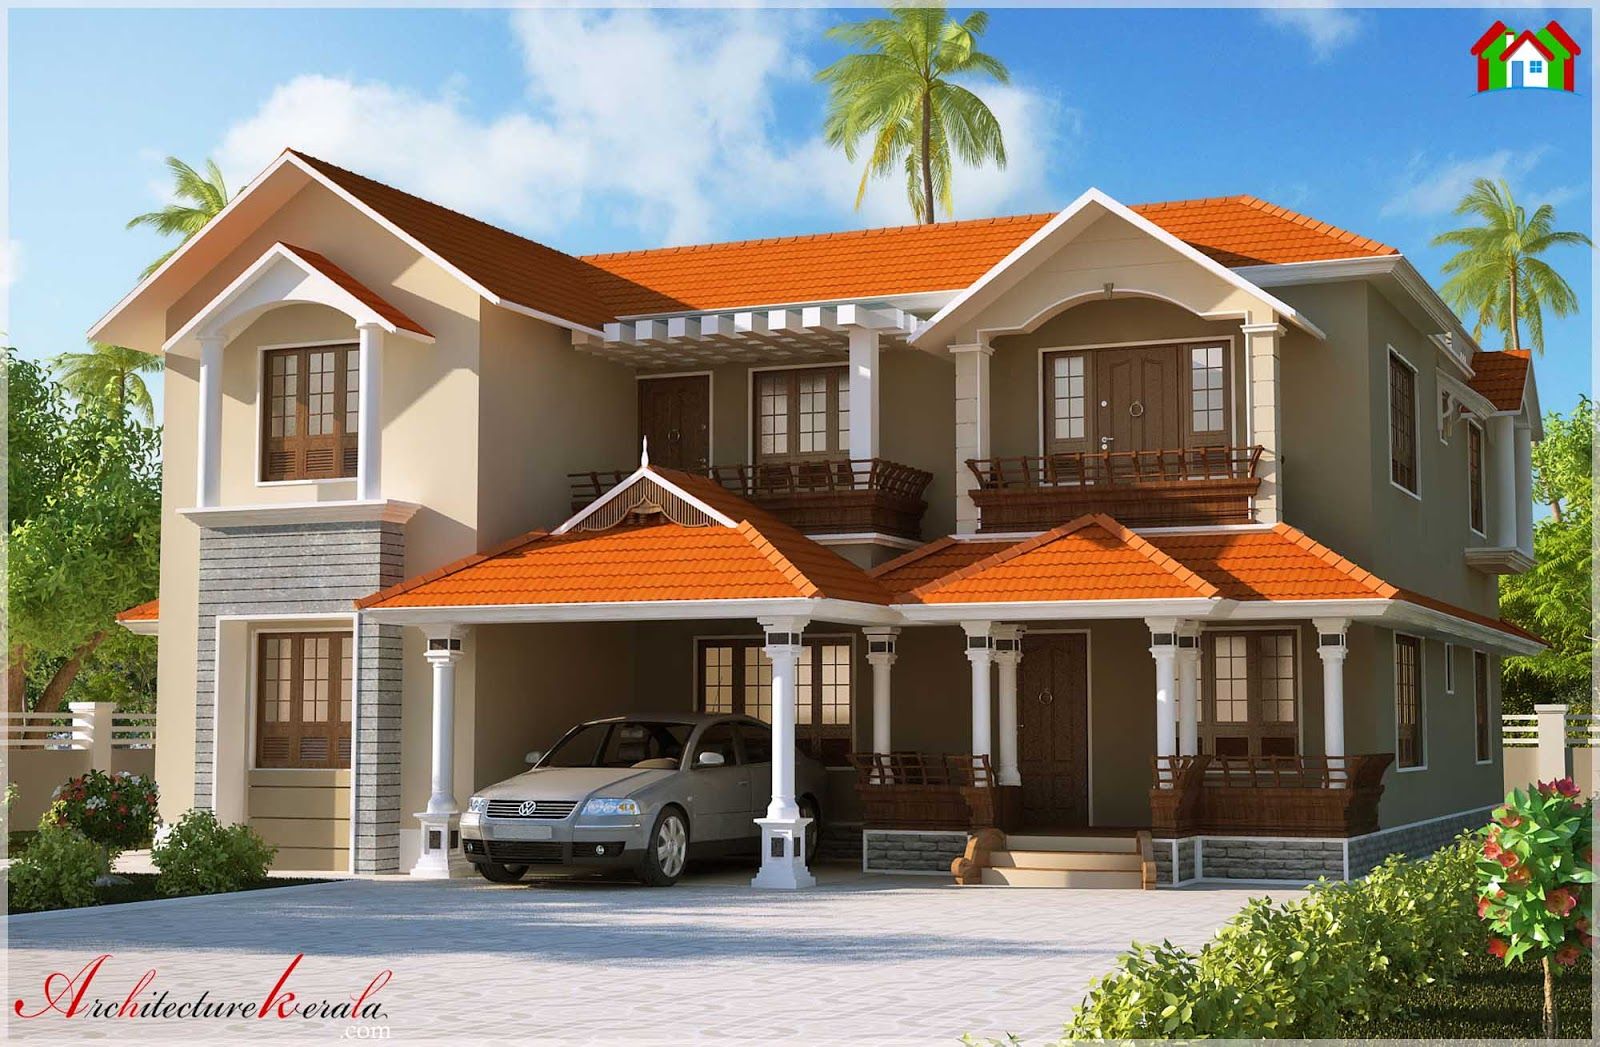 Kerala style dream home elevations 3000 sq ft for 3000 sq ft house plans kerala